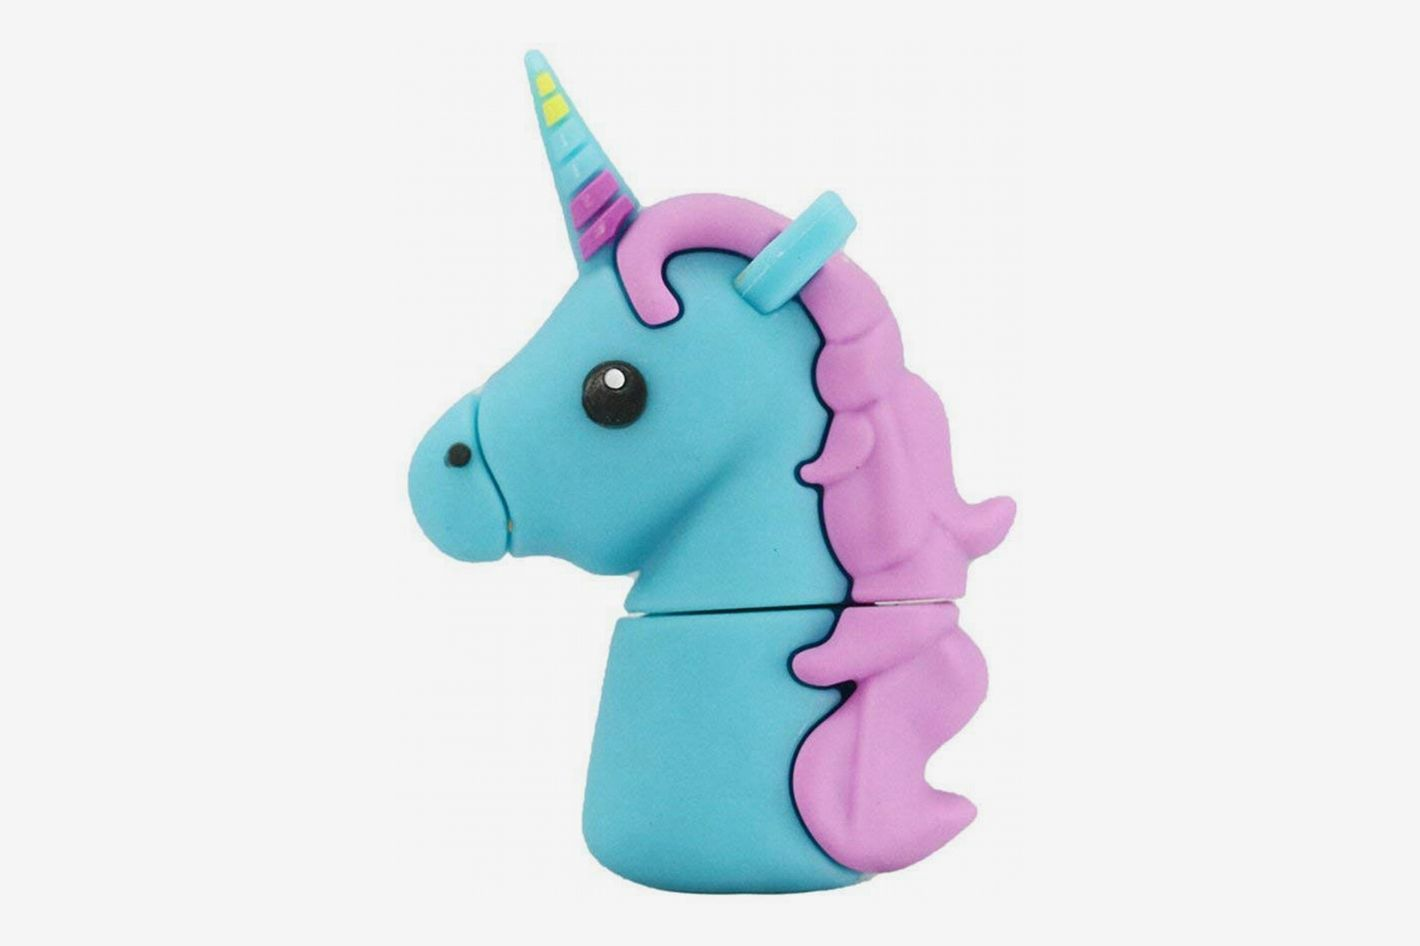 Aneew 16GB Blue Unicorn USB Flash Drive